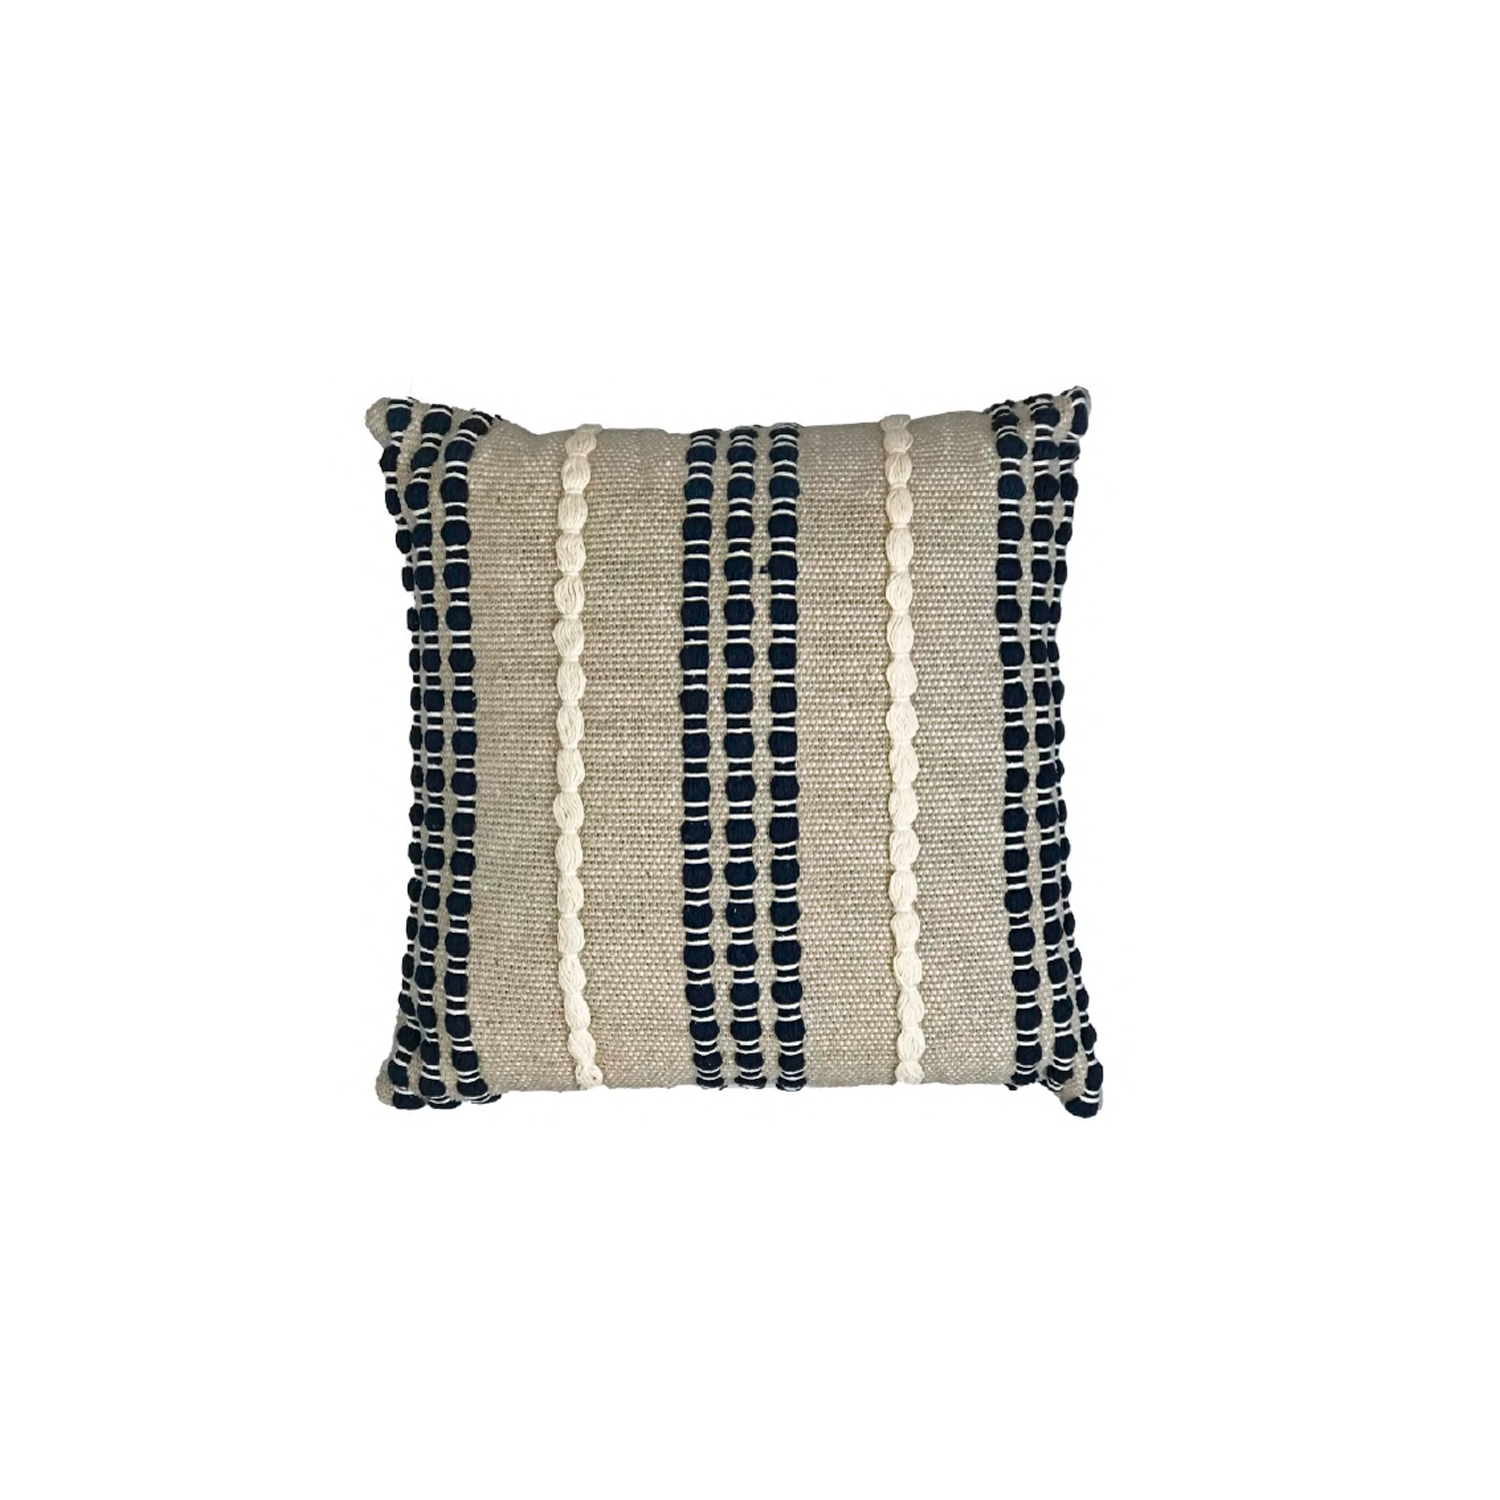 Lua Noite Cotton Cushion Square - The Flame Sustainable Collection is made from a selection of organic cotton fibres, eco-friendly, hand-woven or elaborated using traditional hand-loom techniques. Carefully knitted within a trained community of women that found in their craft a way to provide their families.  This collection combines Elisa Atheniense mission for responsible sourcing and manufacturing. Each piece is meticulously hand-loom by artisans who practised methods with age-old techniques. With a minimal electricity impact, each item crafted is therefore unique and exclusive. Weavers and artisans are the ultimate lifelines of Elisa Atheniense Home Products.  The hand woven cotton, washable cushion cover is made in Brazil and the inner cushion is made in the UK.   | Matter of Stuff